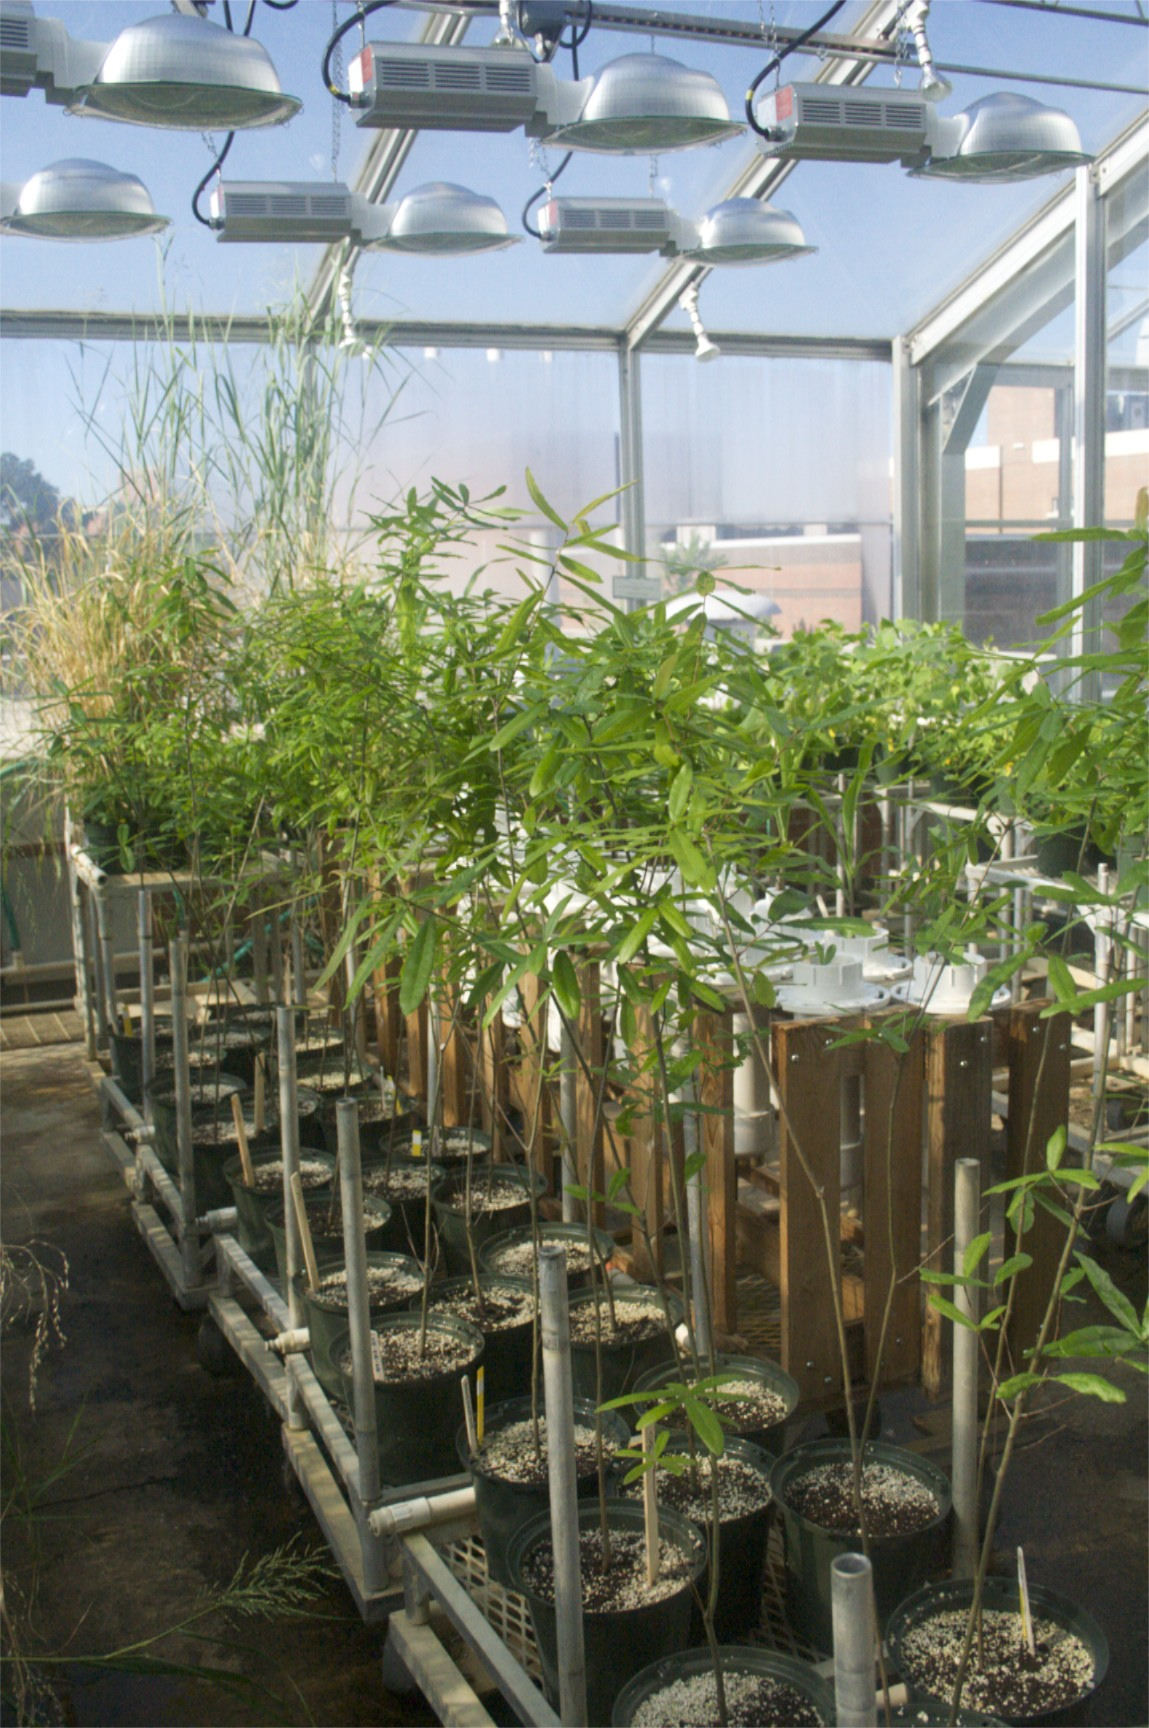 Experimental trees in the NCSU Phytotron greenhouse